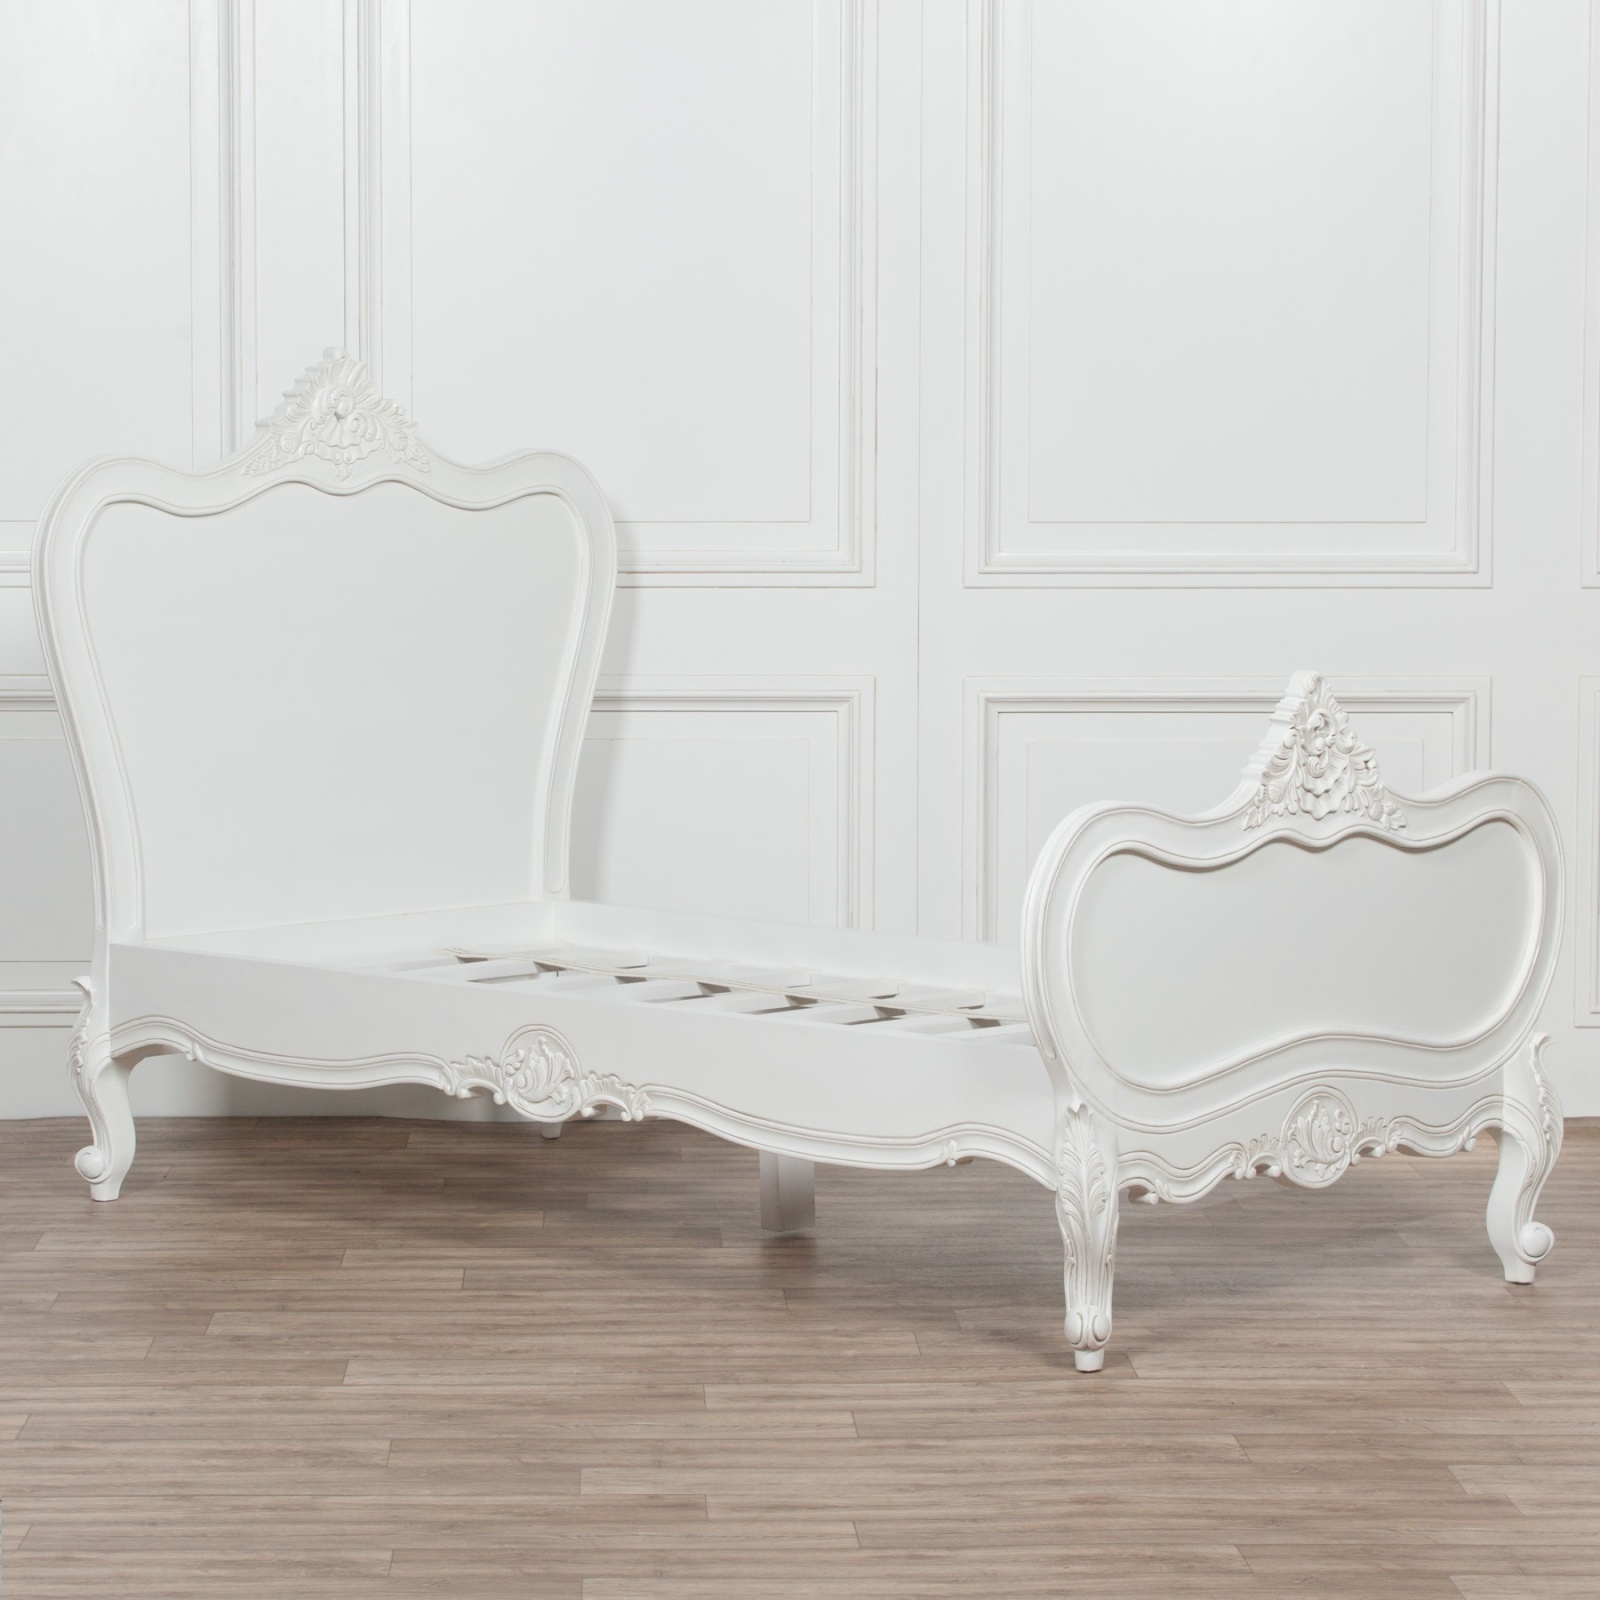 Picture of: 3ft French White Chateau Wooden Single Bed Furniture La Maison Chic Luxury Interiors